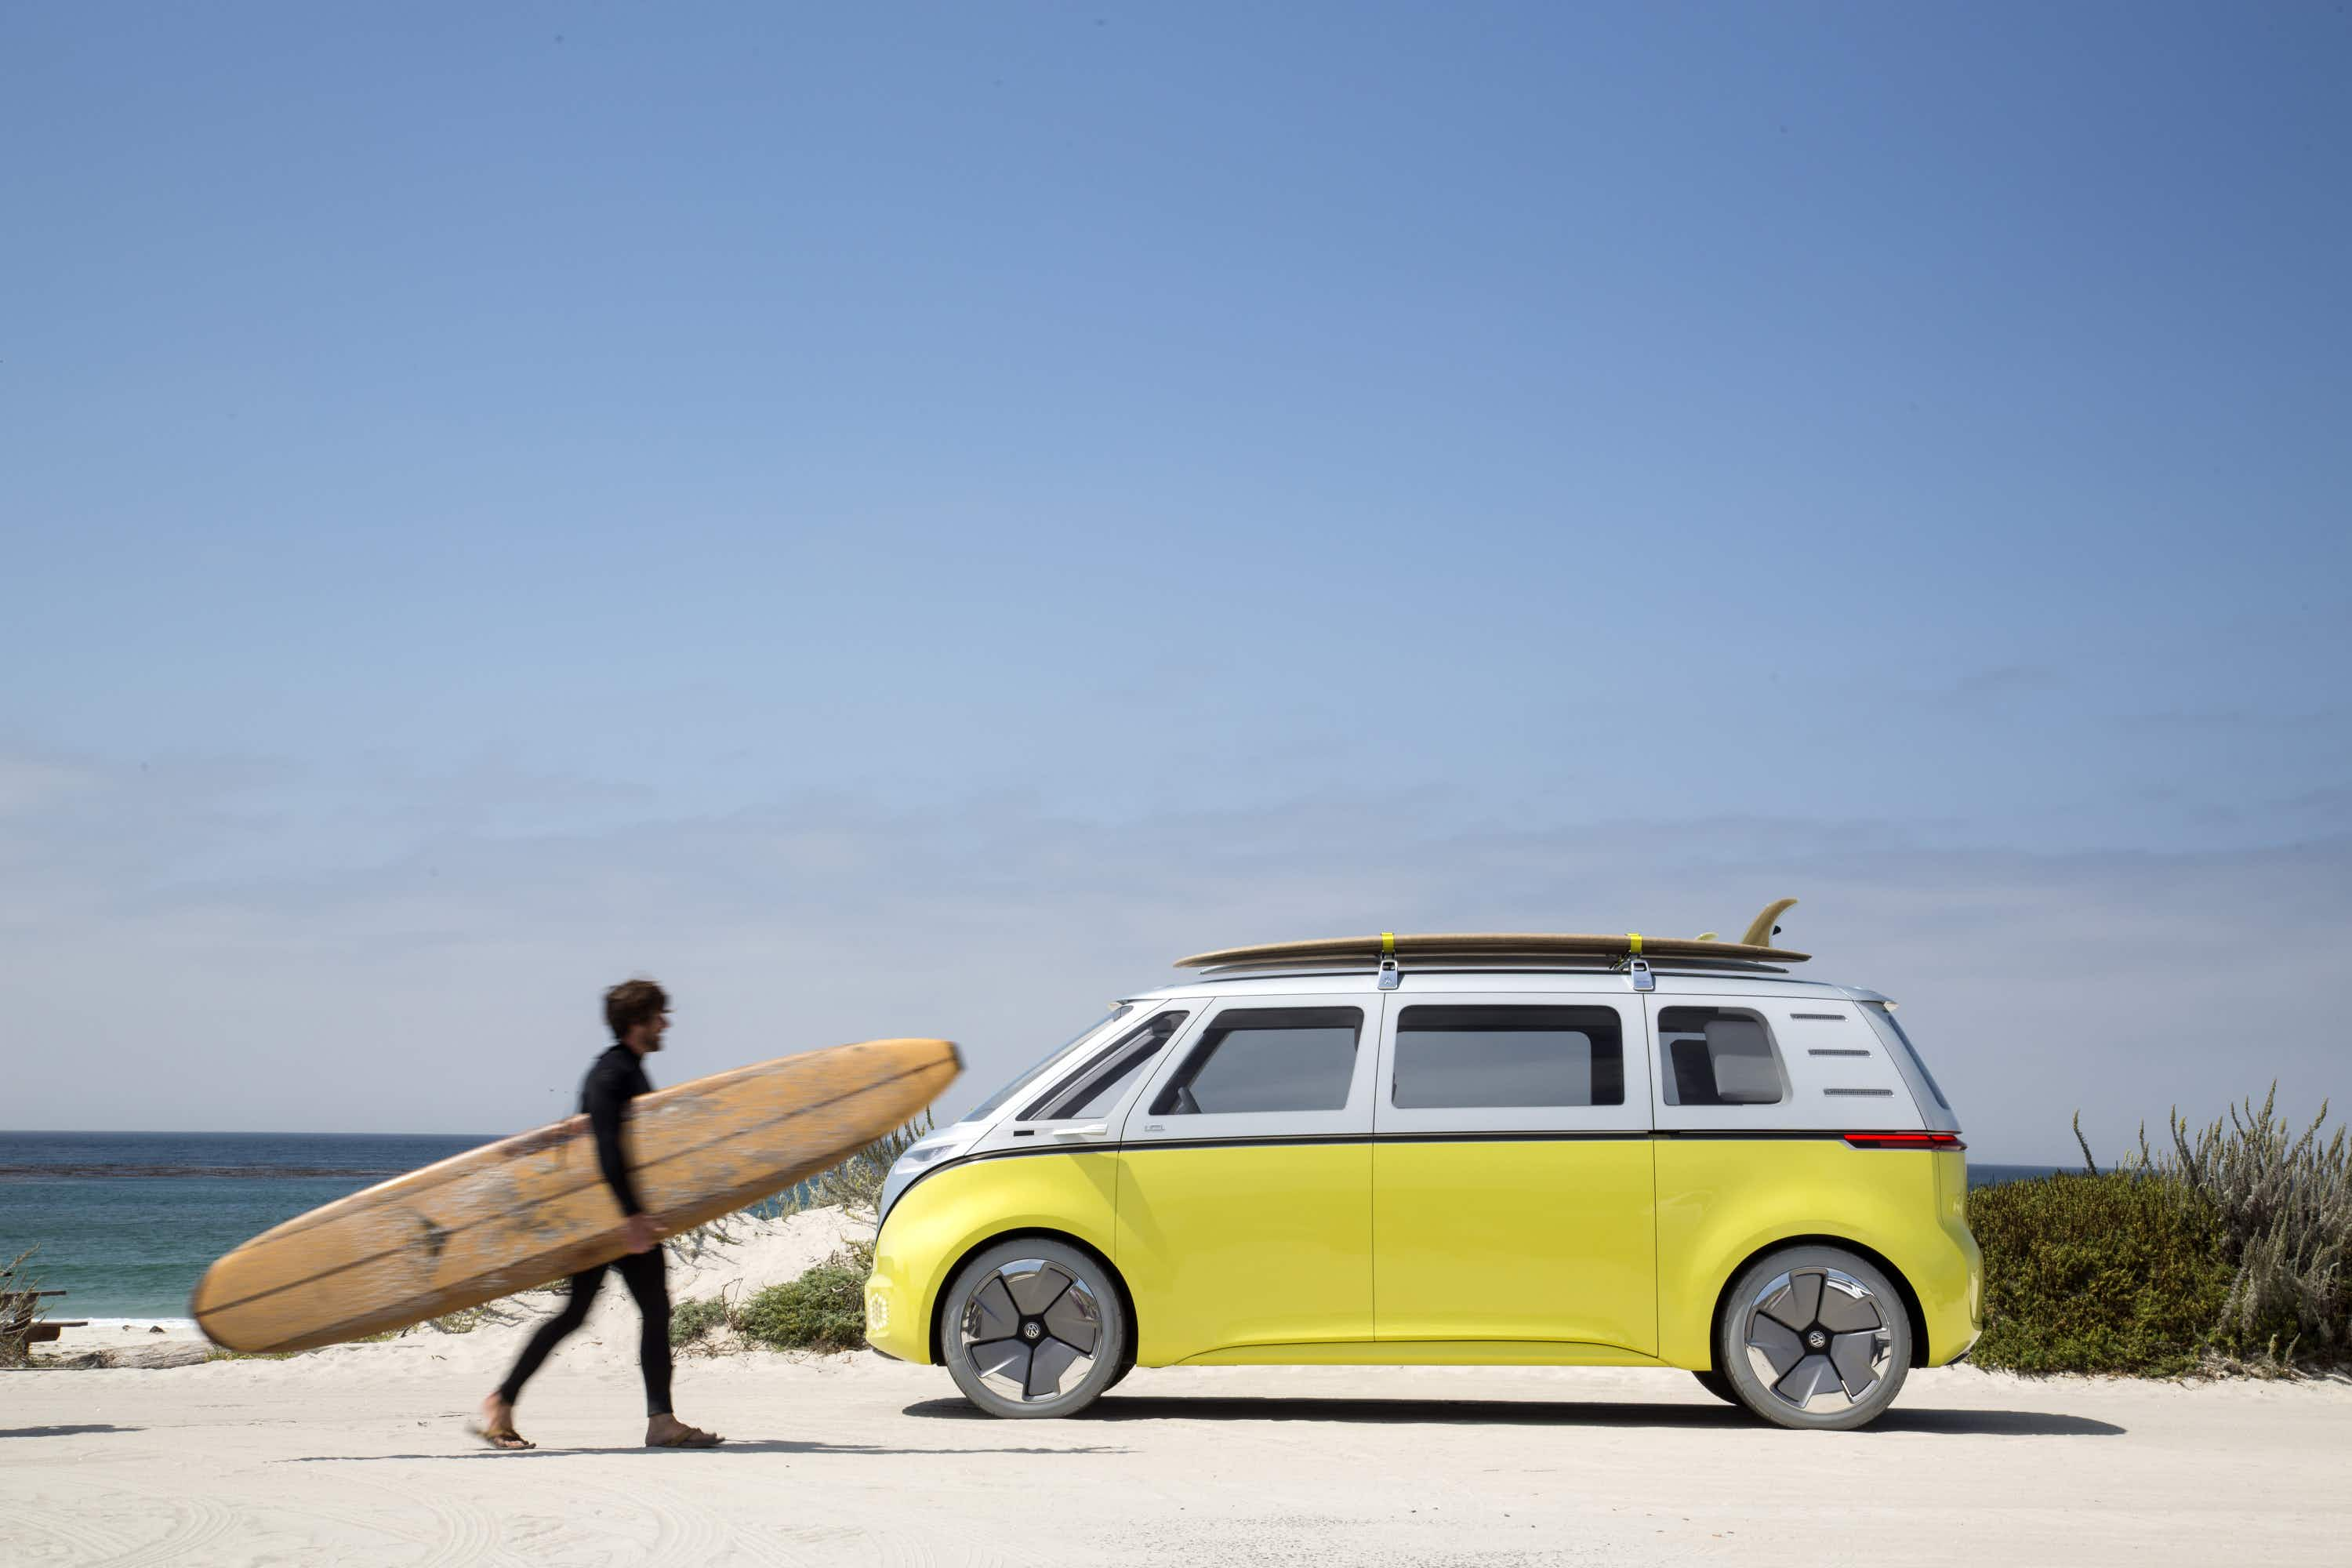 Back to the future - Volkswagen's futuristic electric campervan is going into production